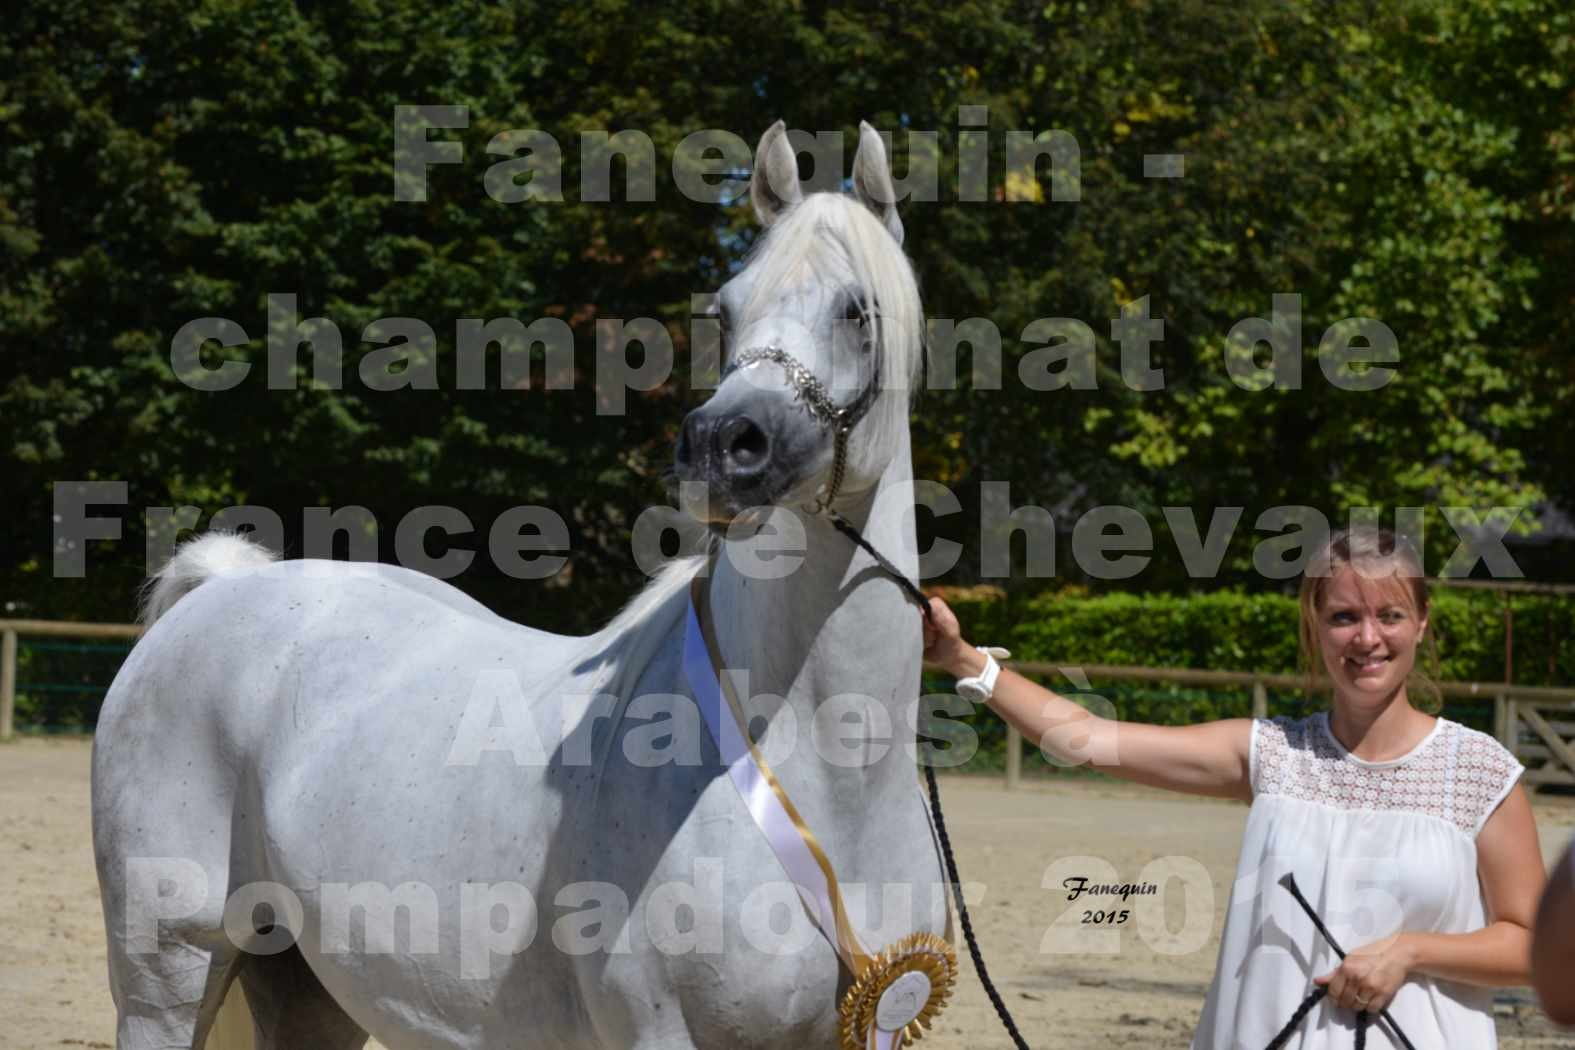 Championnat de FRANCE du cheval ARABE à POMPADOUR 2015 - Classes PROFESSIONNELS - HAADJA - 8